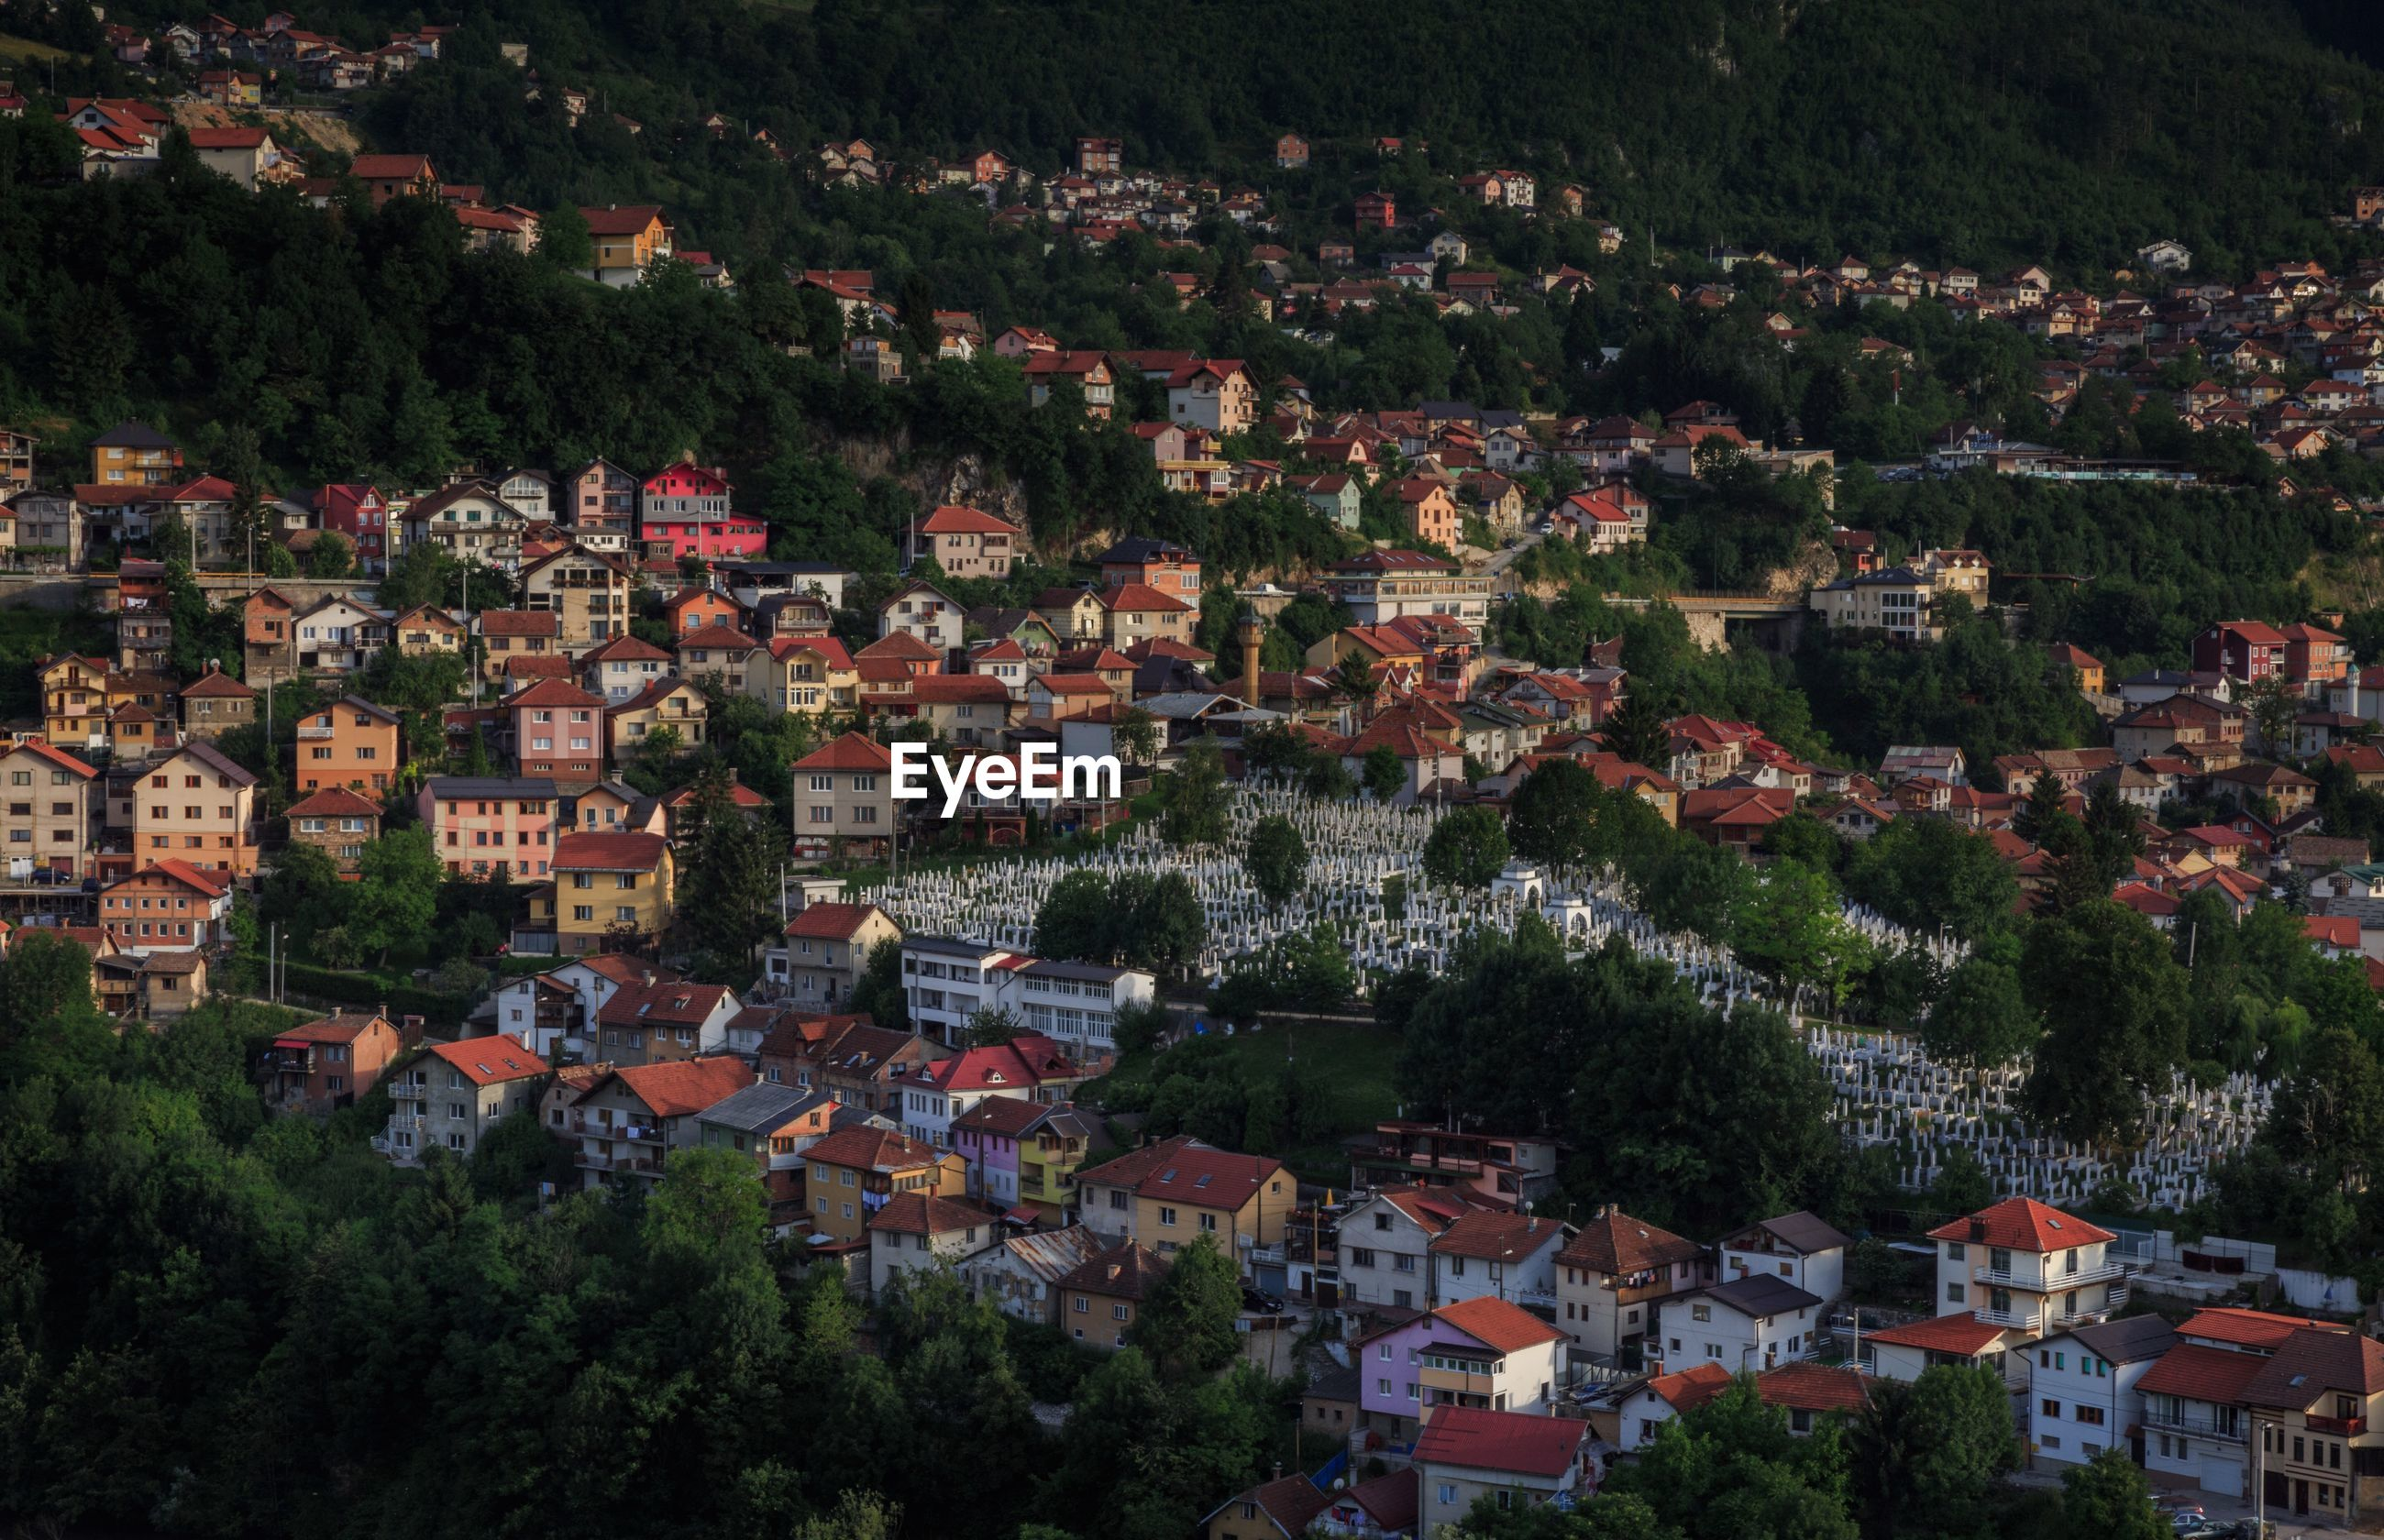 HIGH ANGLE VIEW OF HOUSES IN TOWN AGAINST TREES